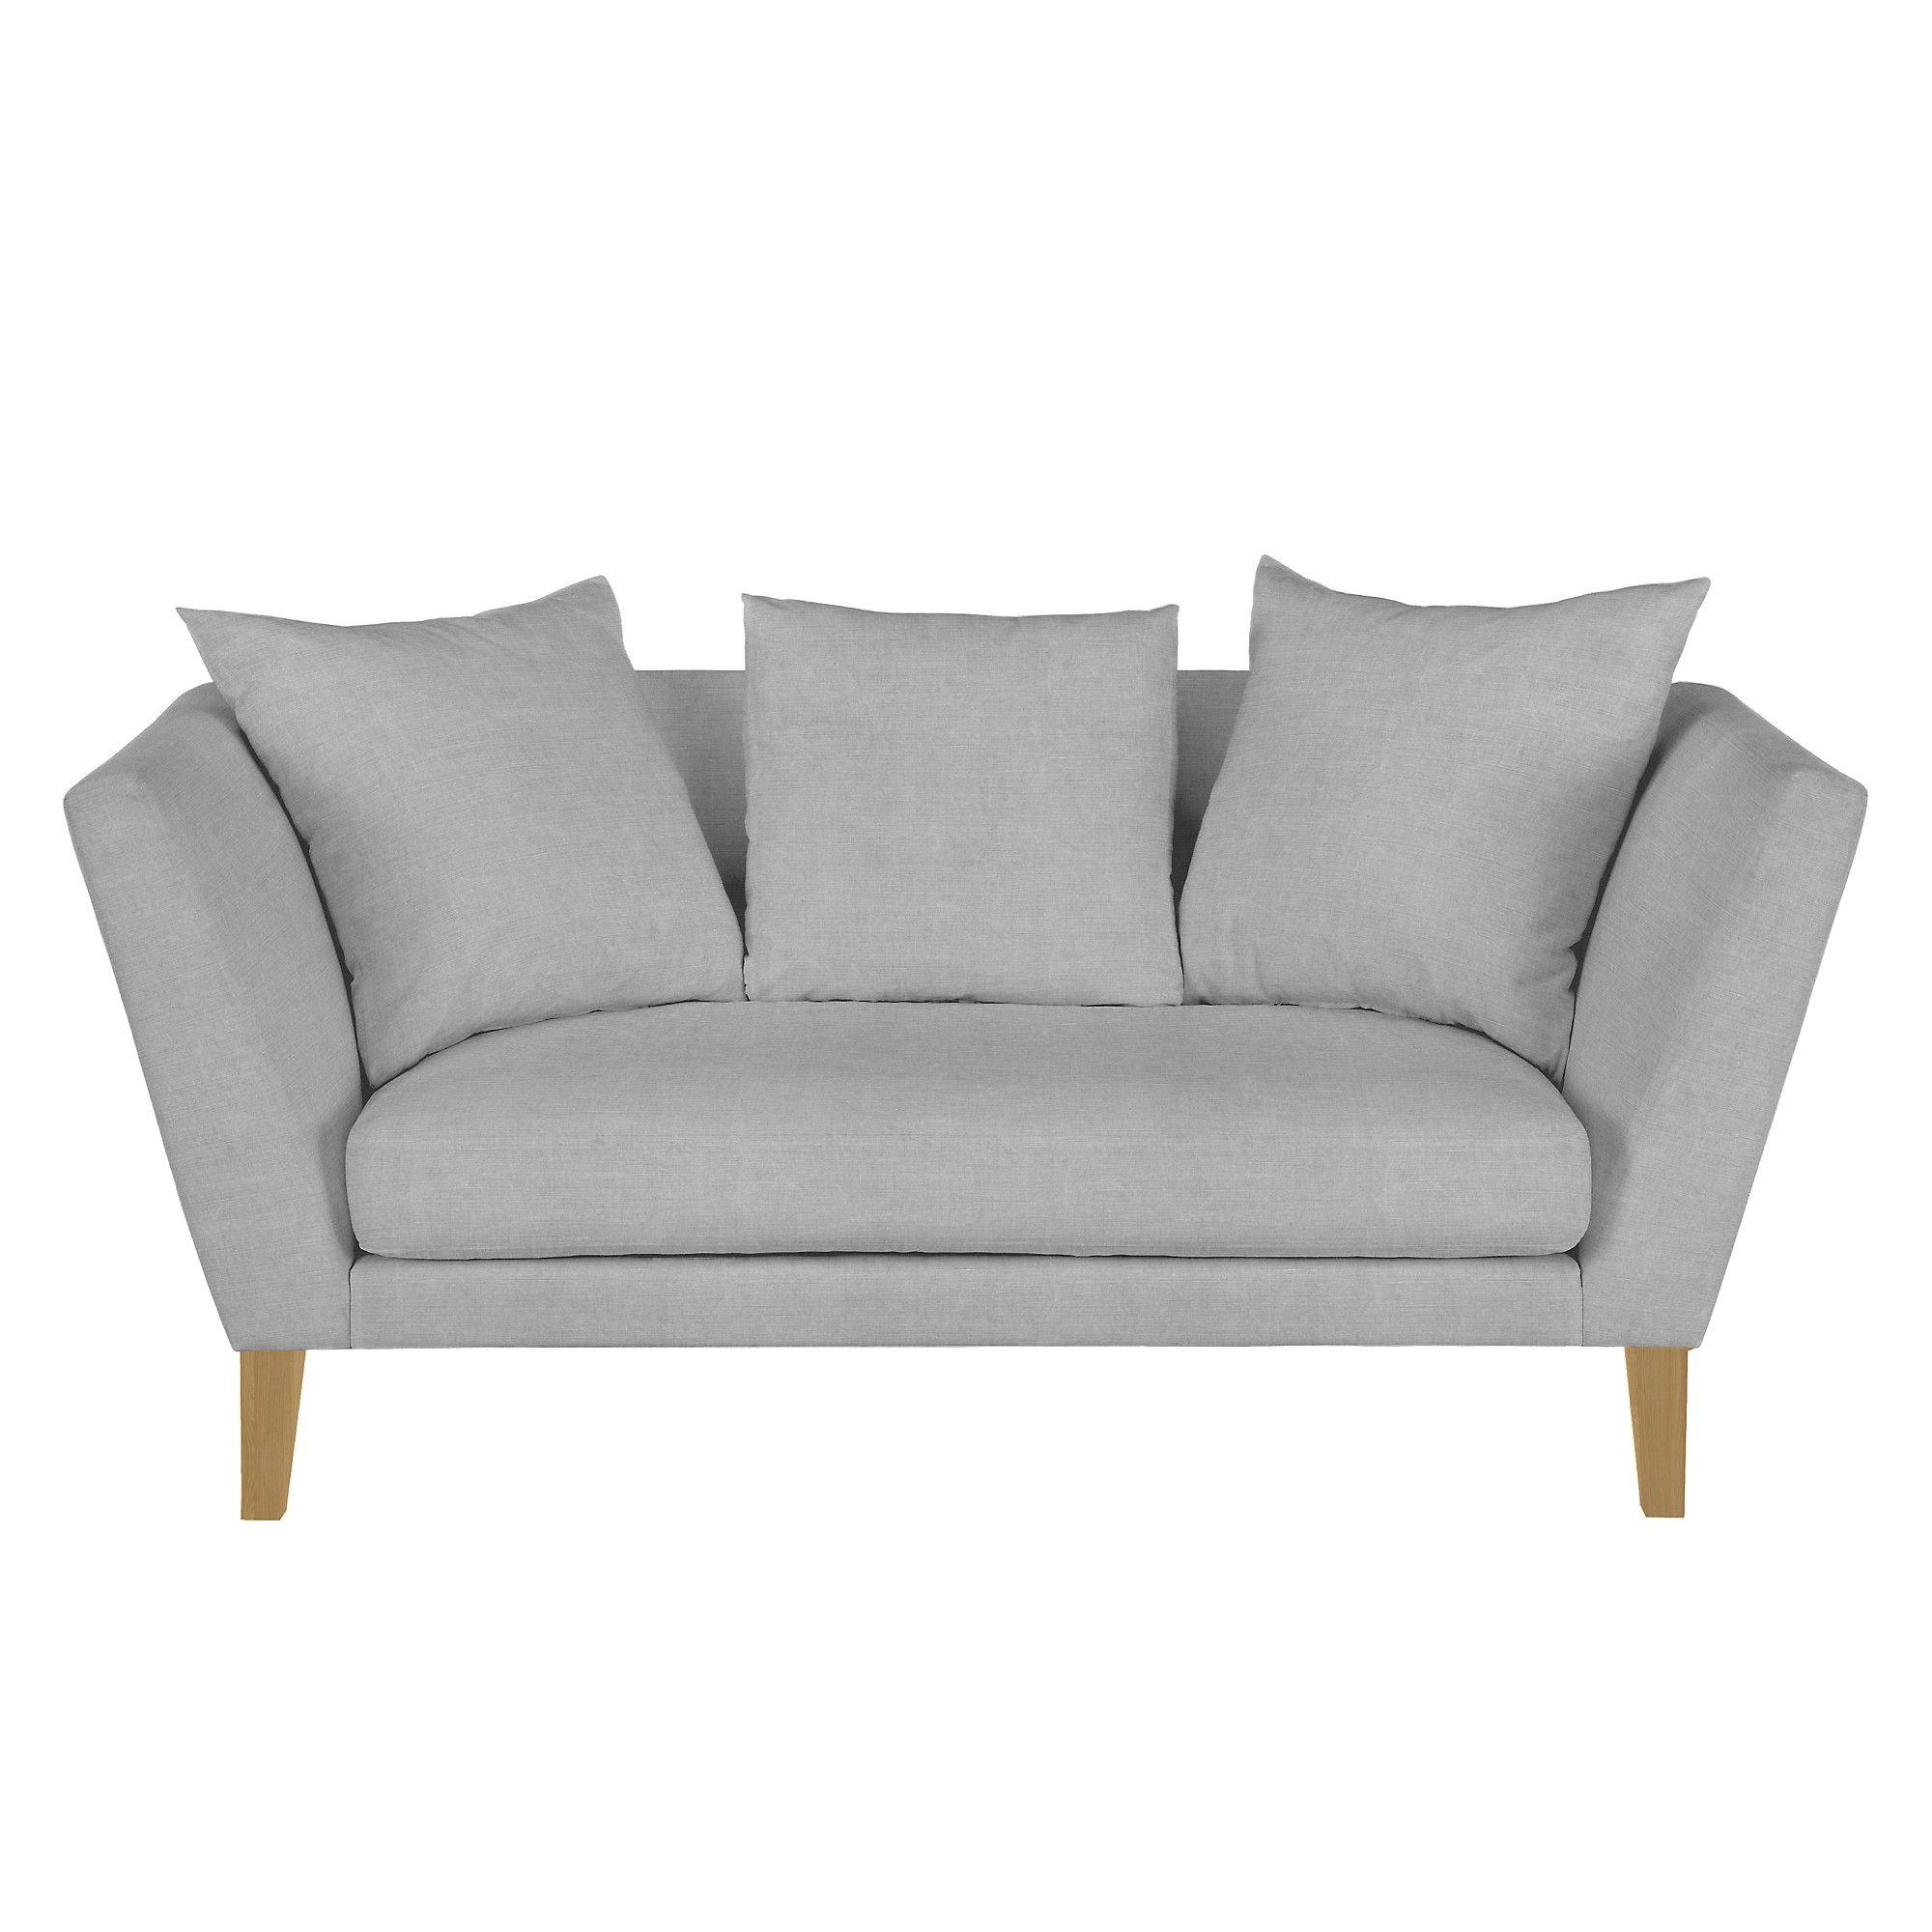 John Lewis Regency Medium Sofa